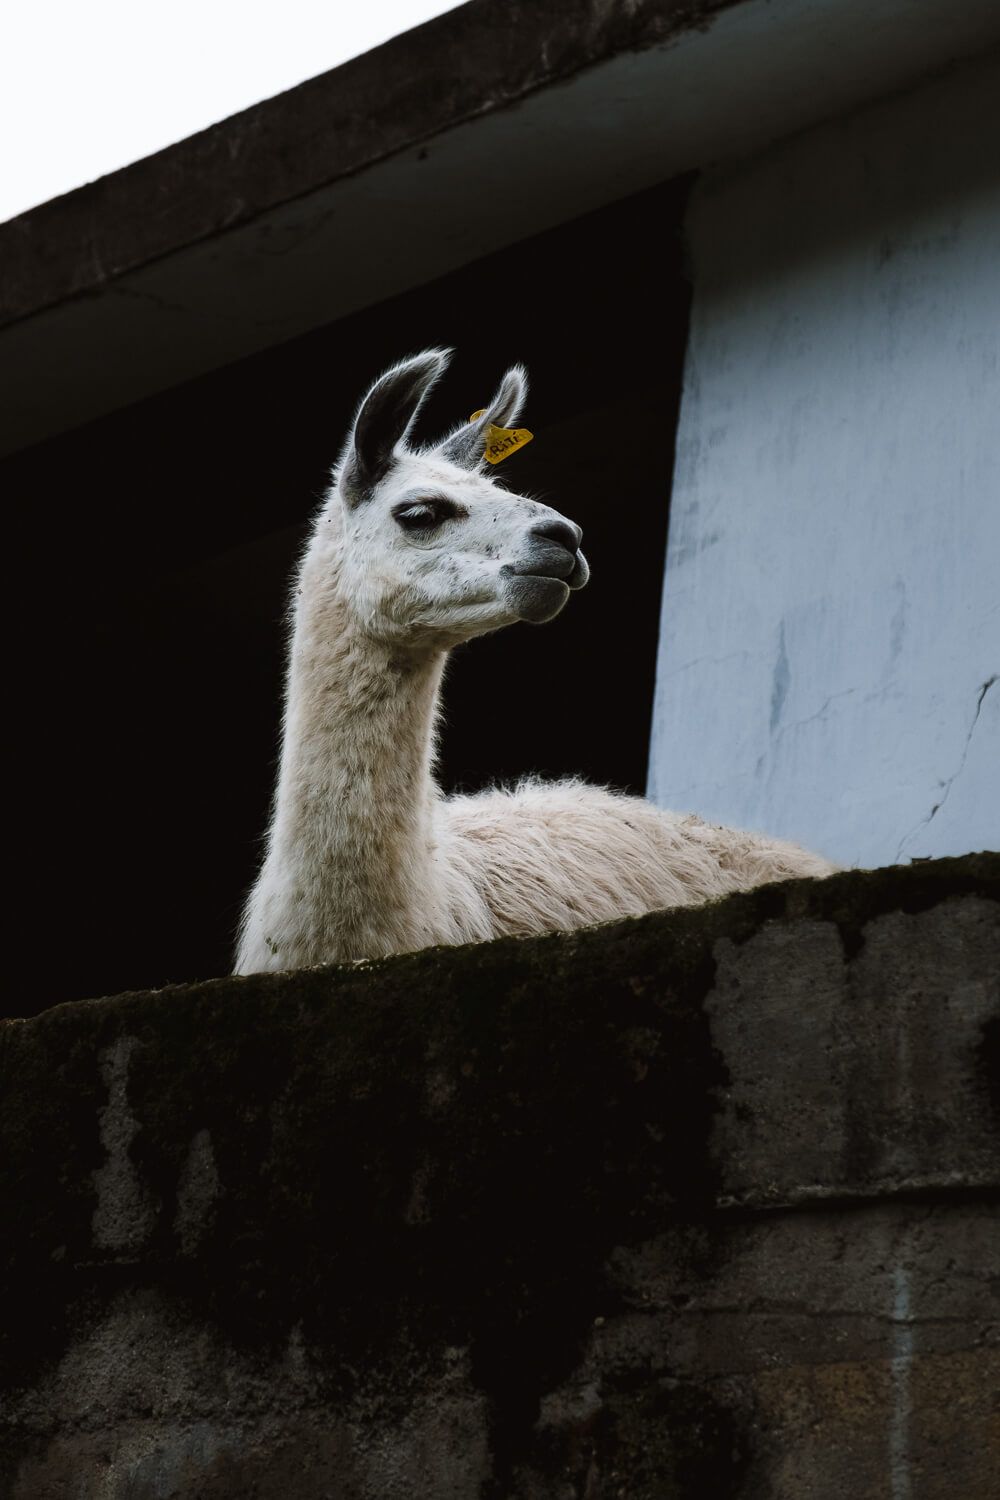 "A curious llama. Travel photography and guide by © Natasha Lequepeys for ""And Then I Met Yoko"". #machupicchu #shortincatrail #2dayincatrail #incatrail #aguascalientes #sacredvalley #peru #travelguide #photoblog #travelblog #travelphotography #landscapephotography #travelitinerary #machupicchuitinerary #fujifilm #southamerica #visitperu #dayhike #ancientruins #hiking"